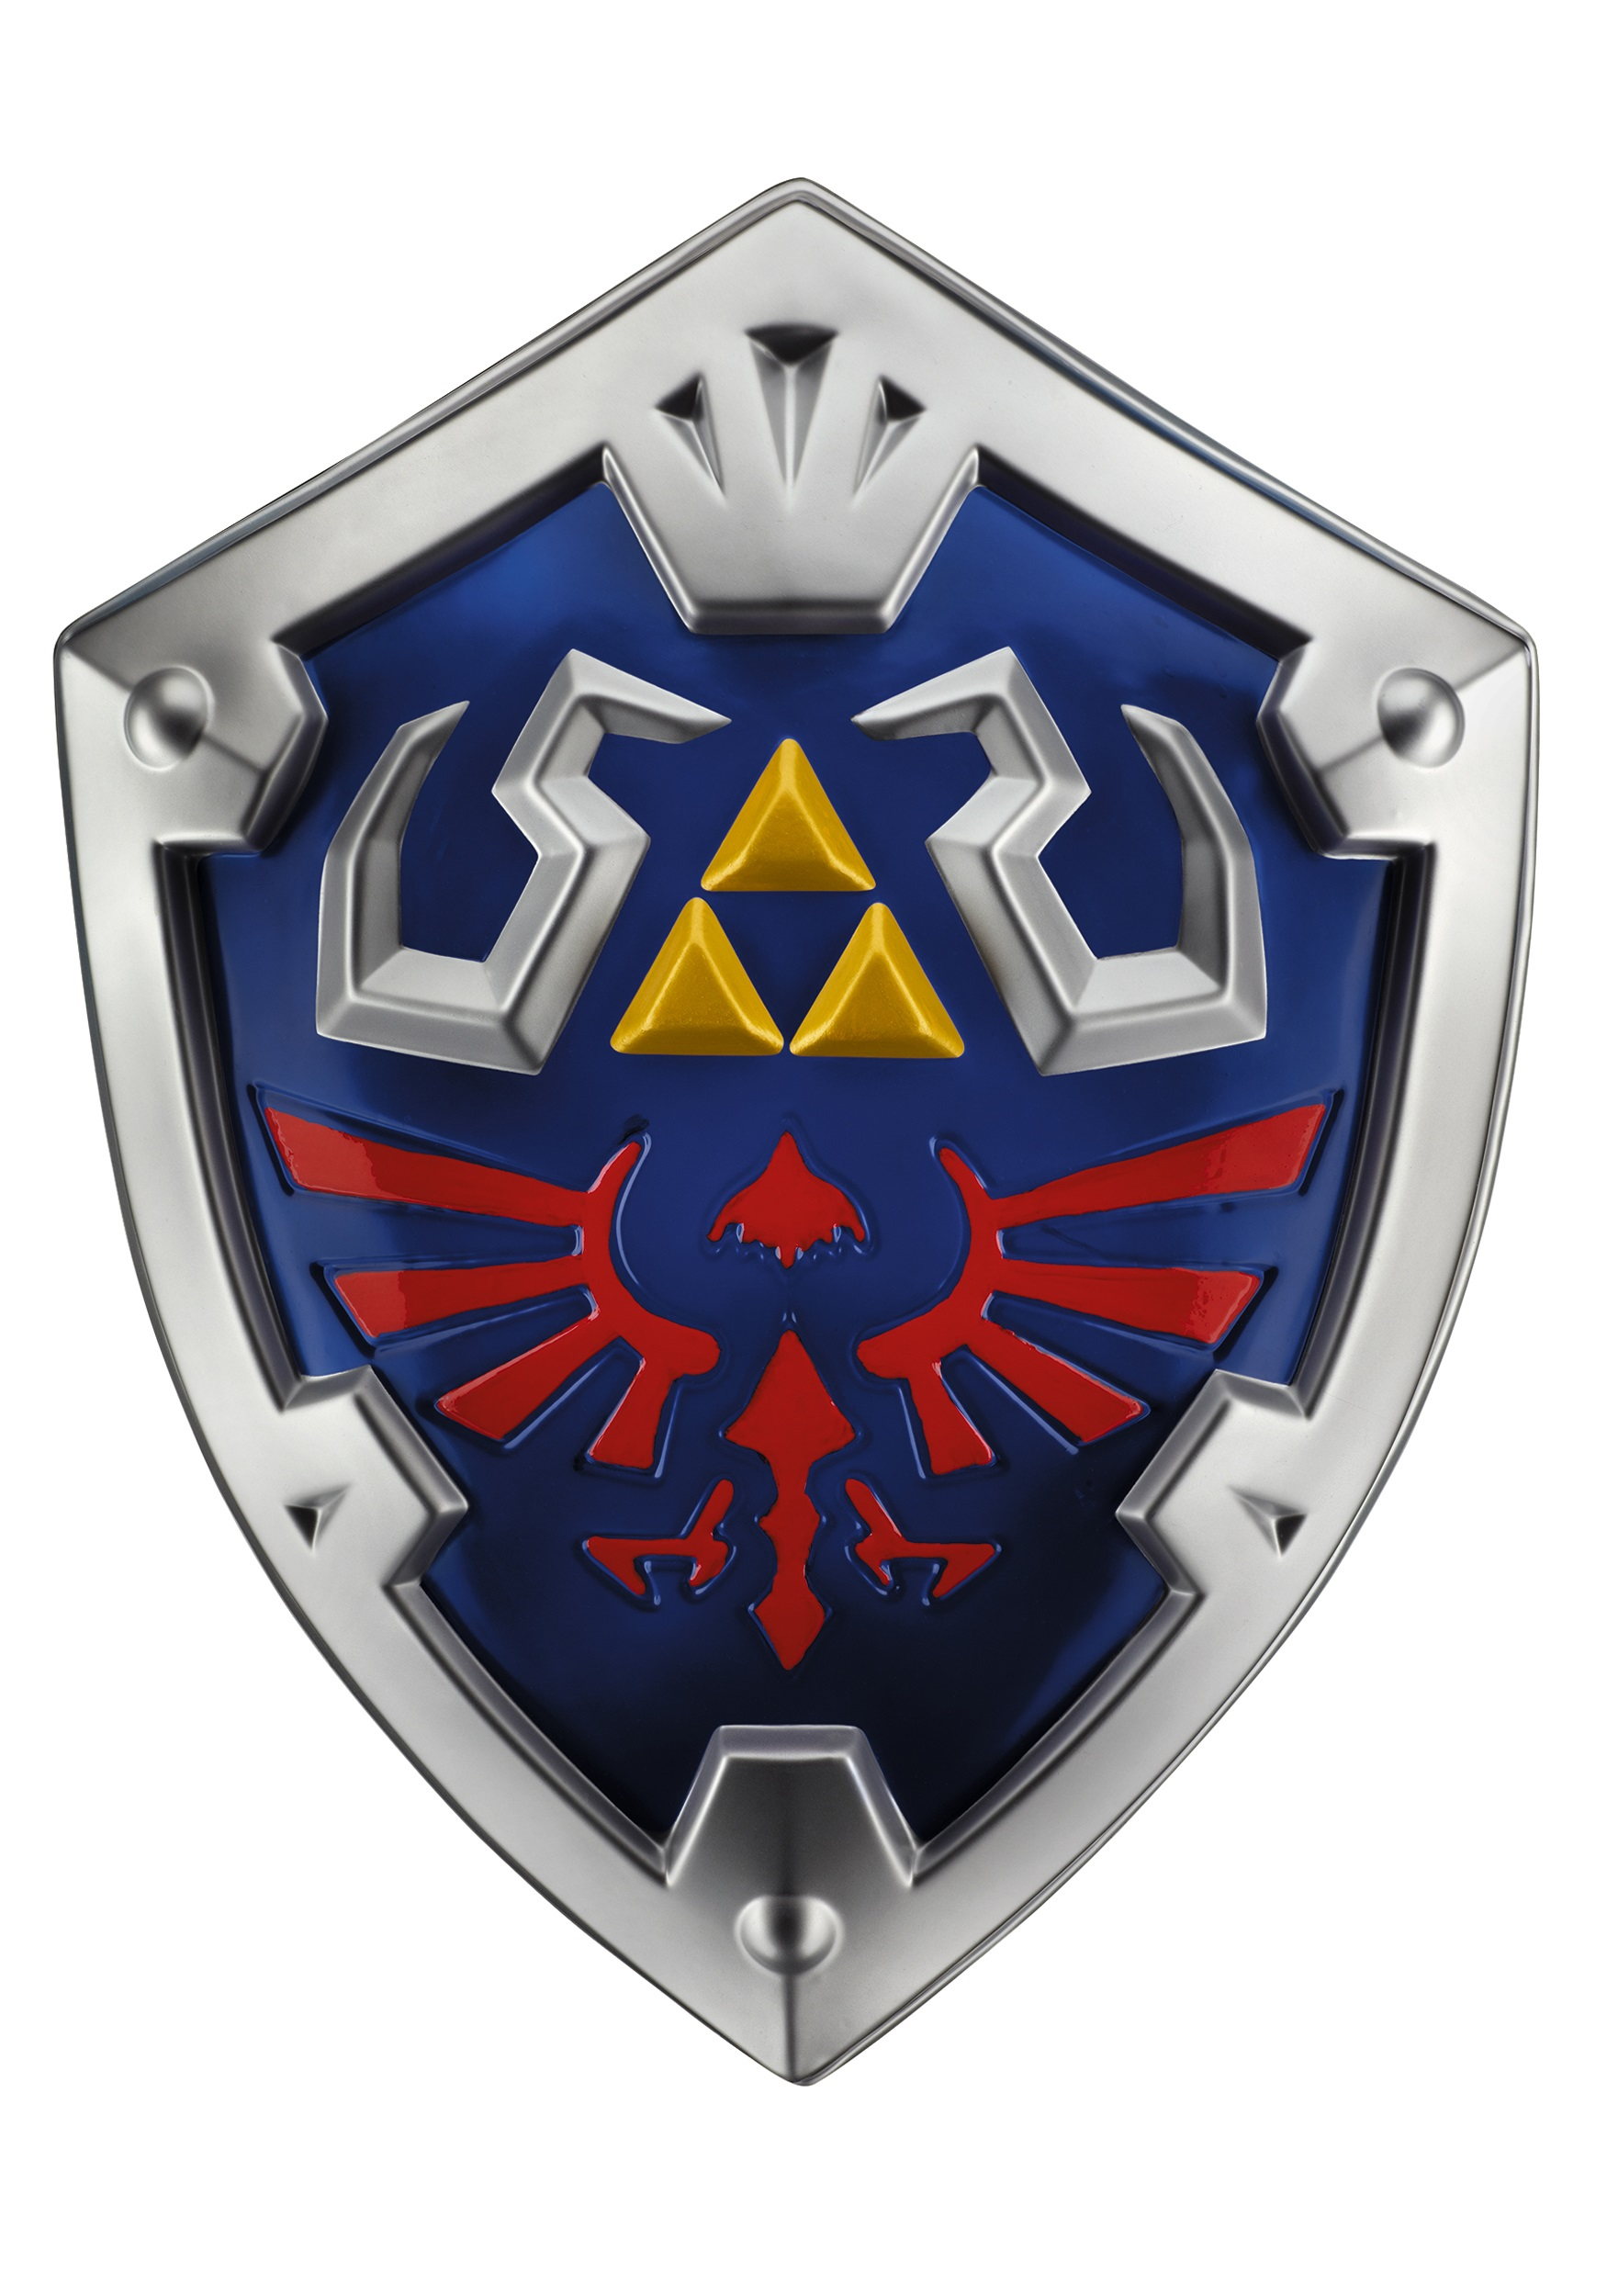 Legend of Zelda Link Shield DI85719